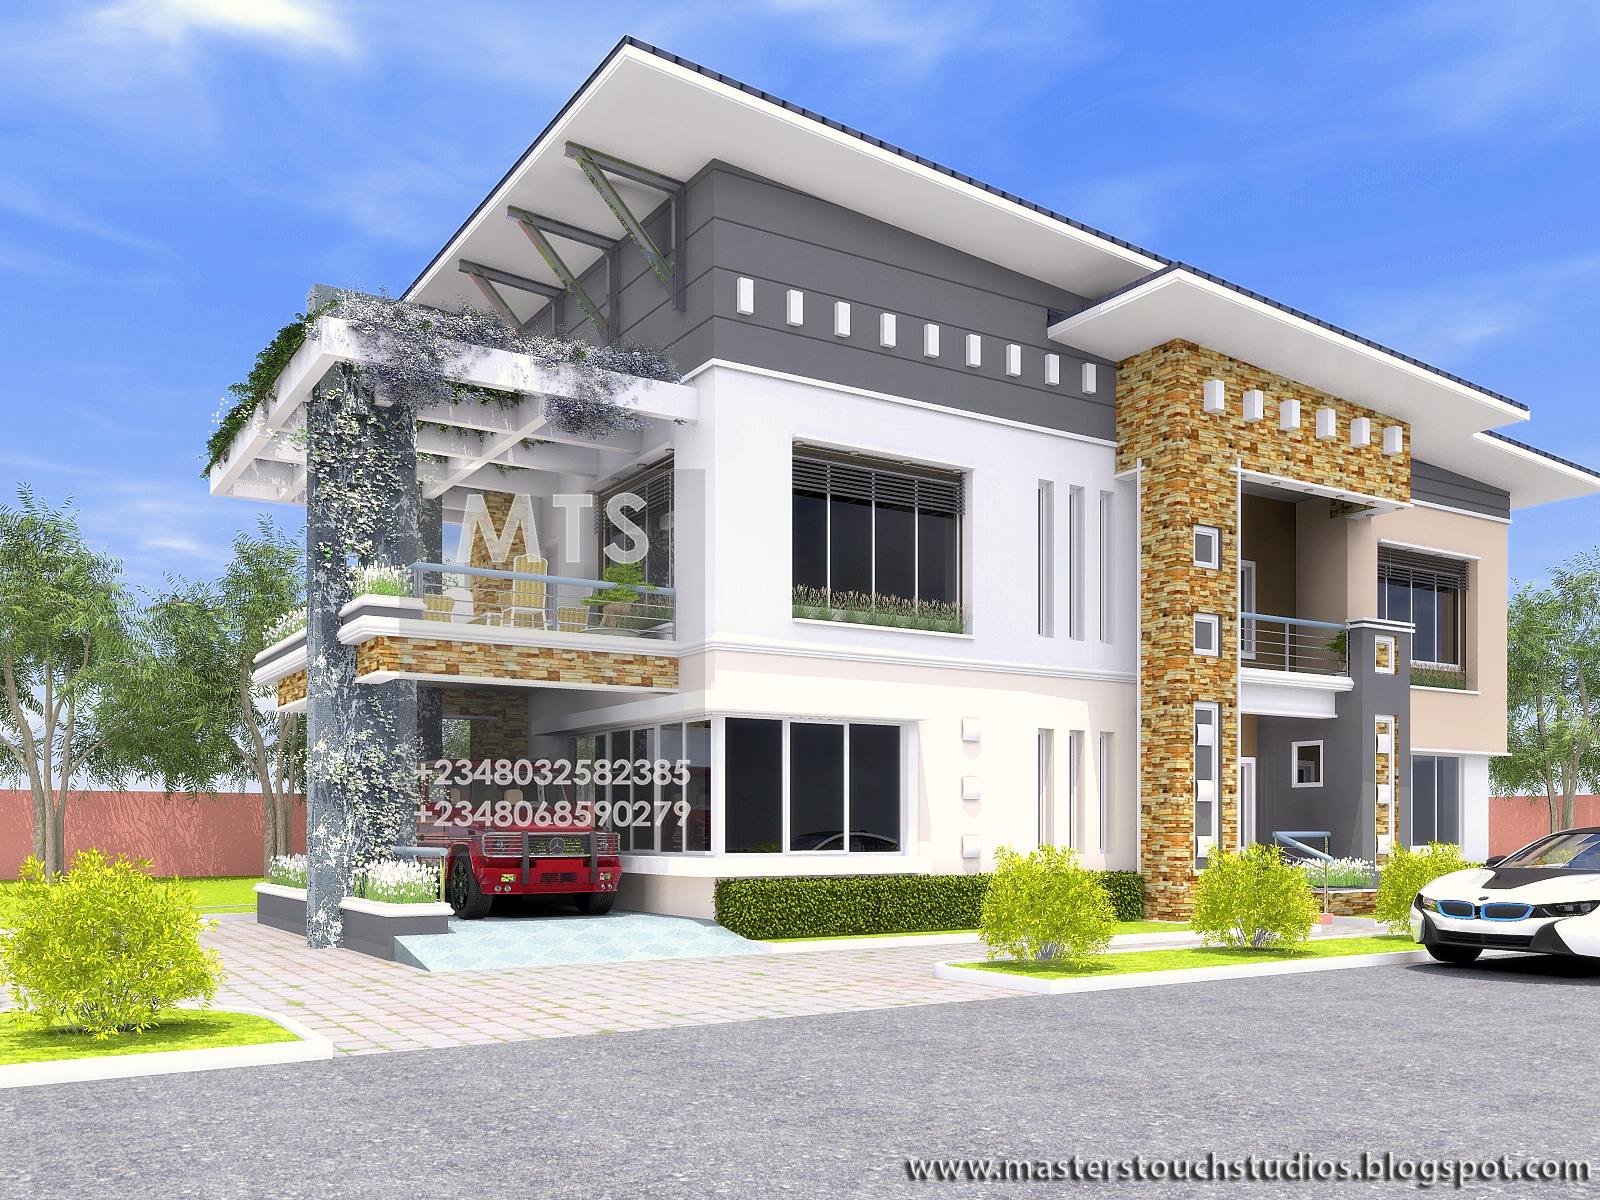 Engr eddy 6 bedroom duplex residential homes and public for 6 bedroom home designs